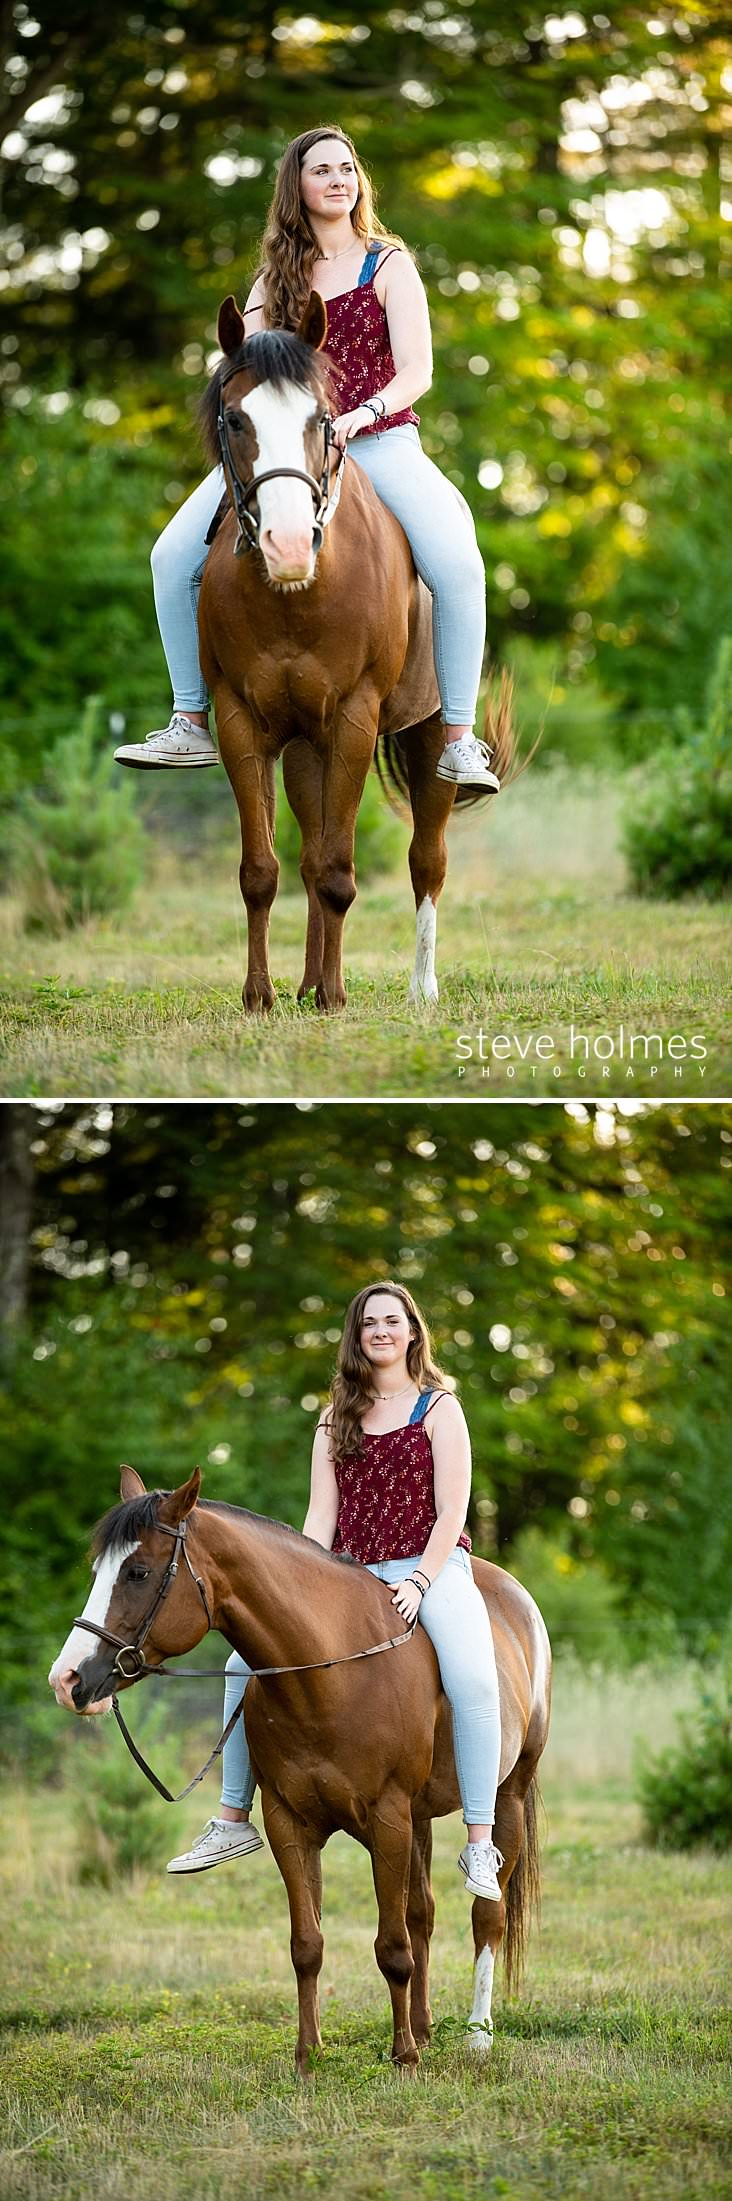 15_Teen looks to the side while riding her horse for senior photo.jpg